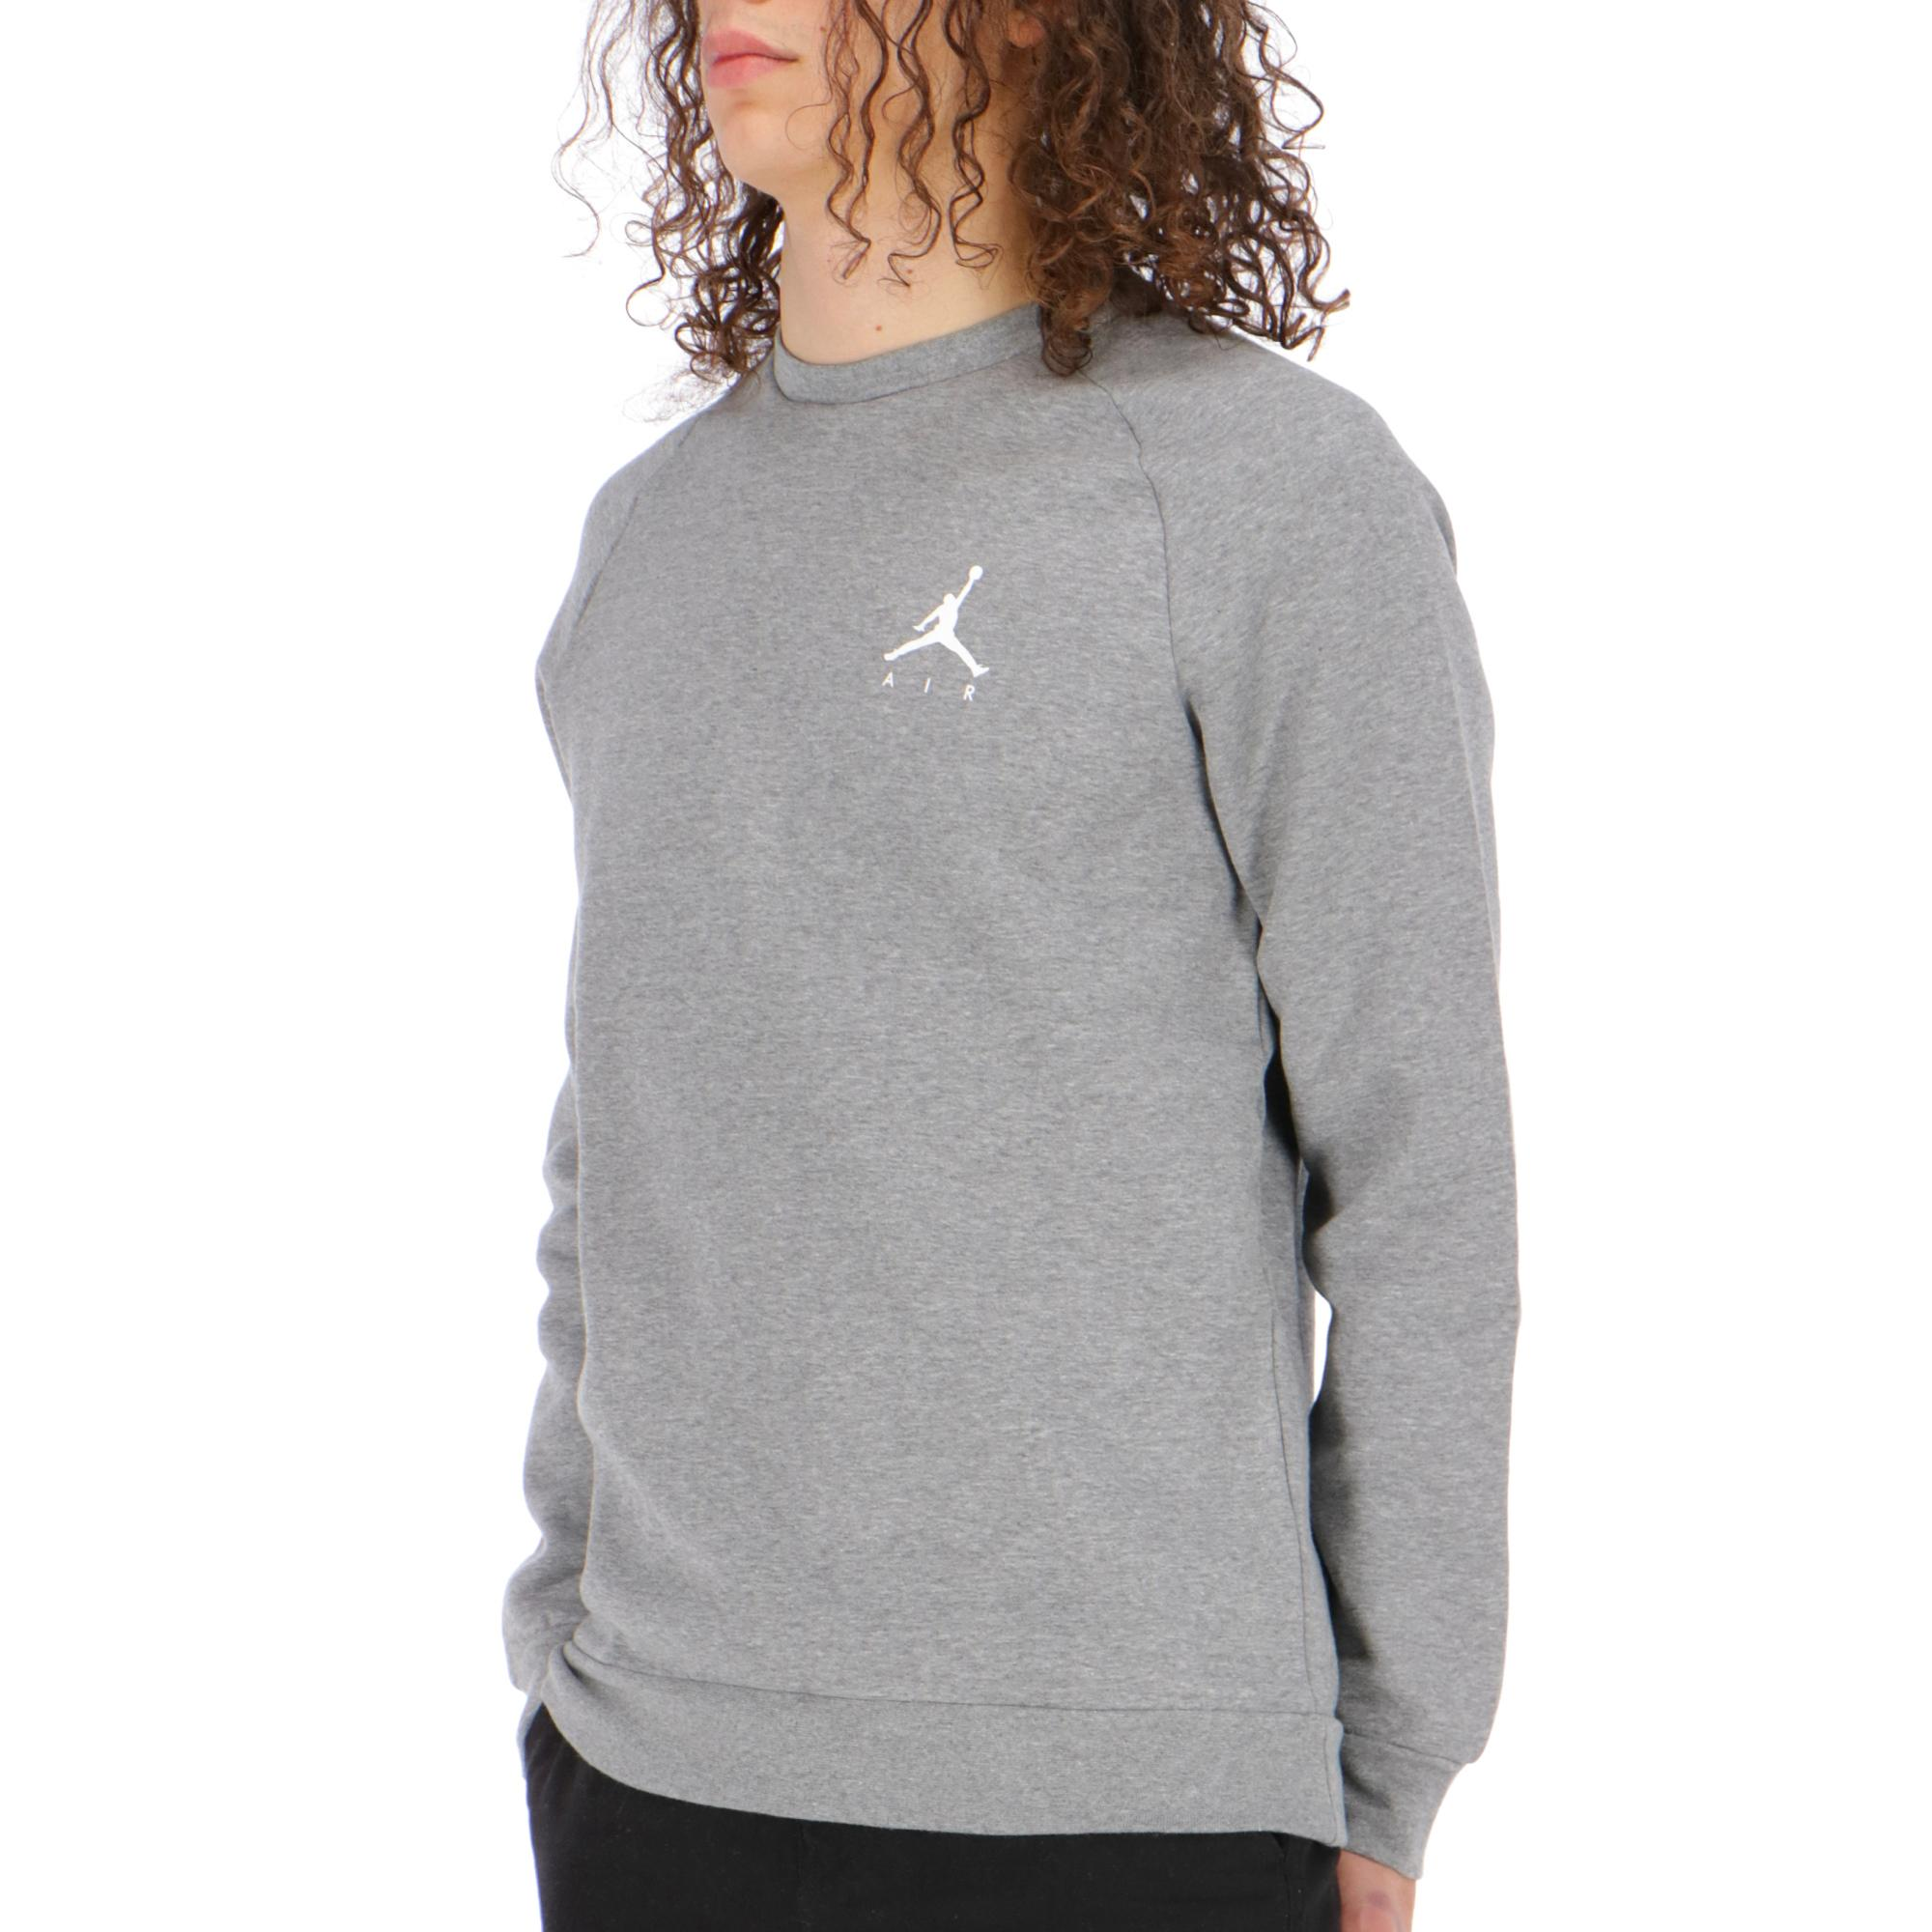 online store 5e370 04951 Jordan Jumpman Fleece Crew Carbon heather white